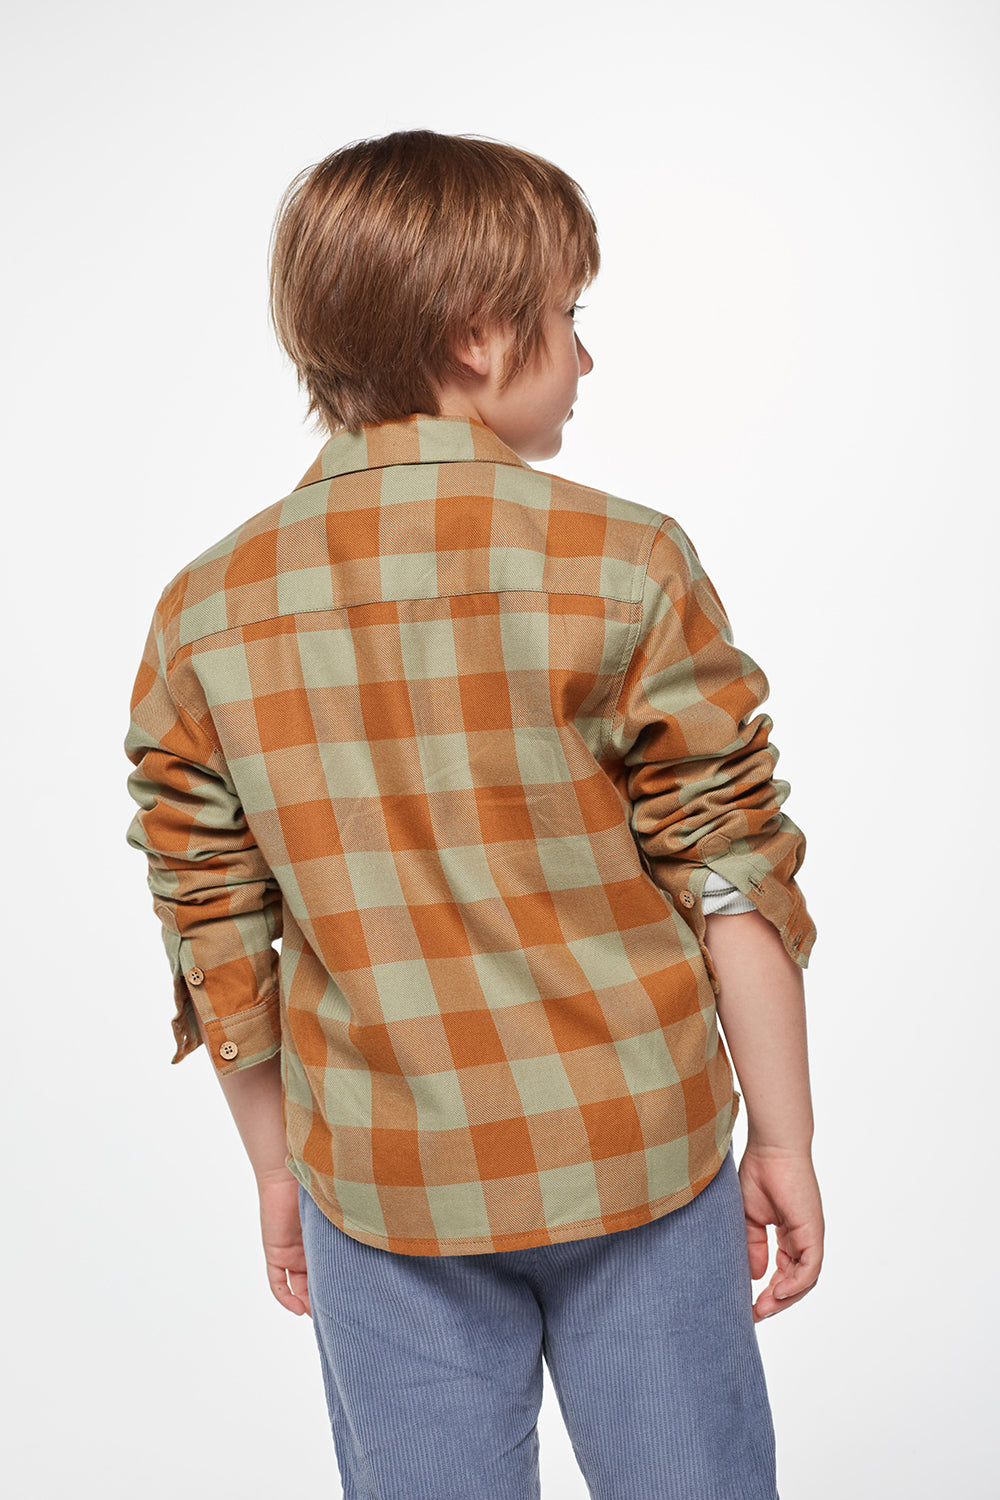 Load image into Gallery viewer, Coco Au Lait BABY CHECKERED SHIRT Shirt Multicolor Squares